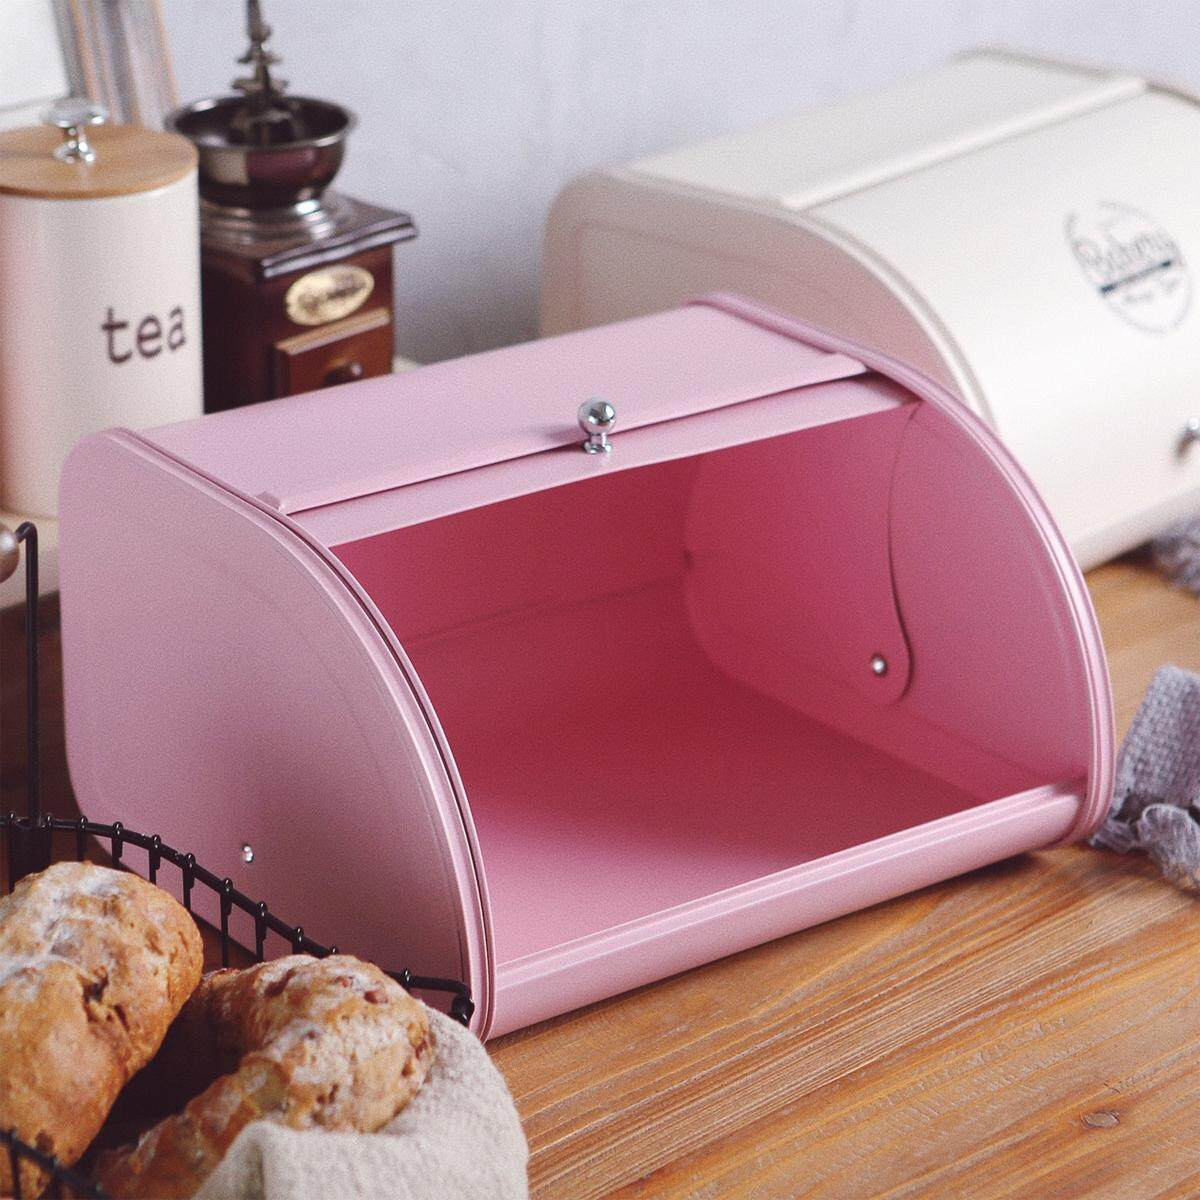 Sale White Pink New Bread Box Storage Bin Keeper Food Pastries Kitchen Container Intl Not Specified Wholesaler